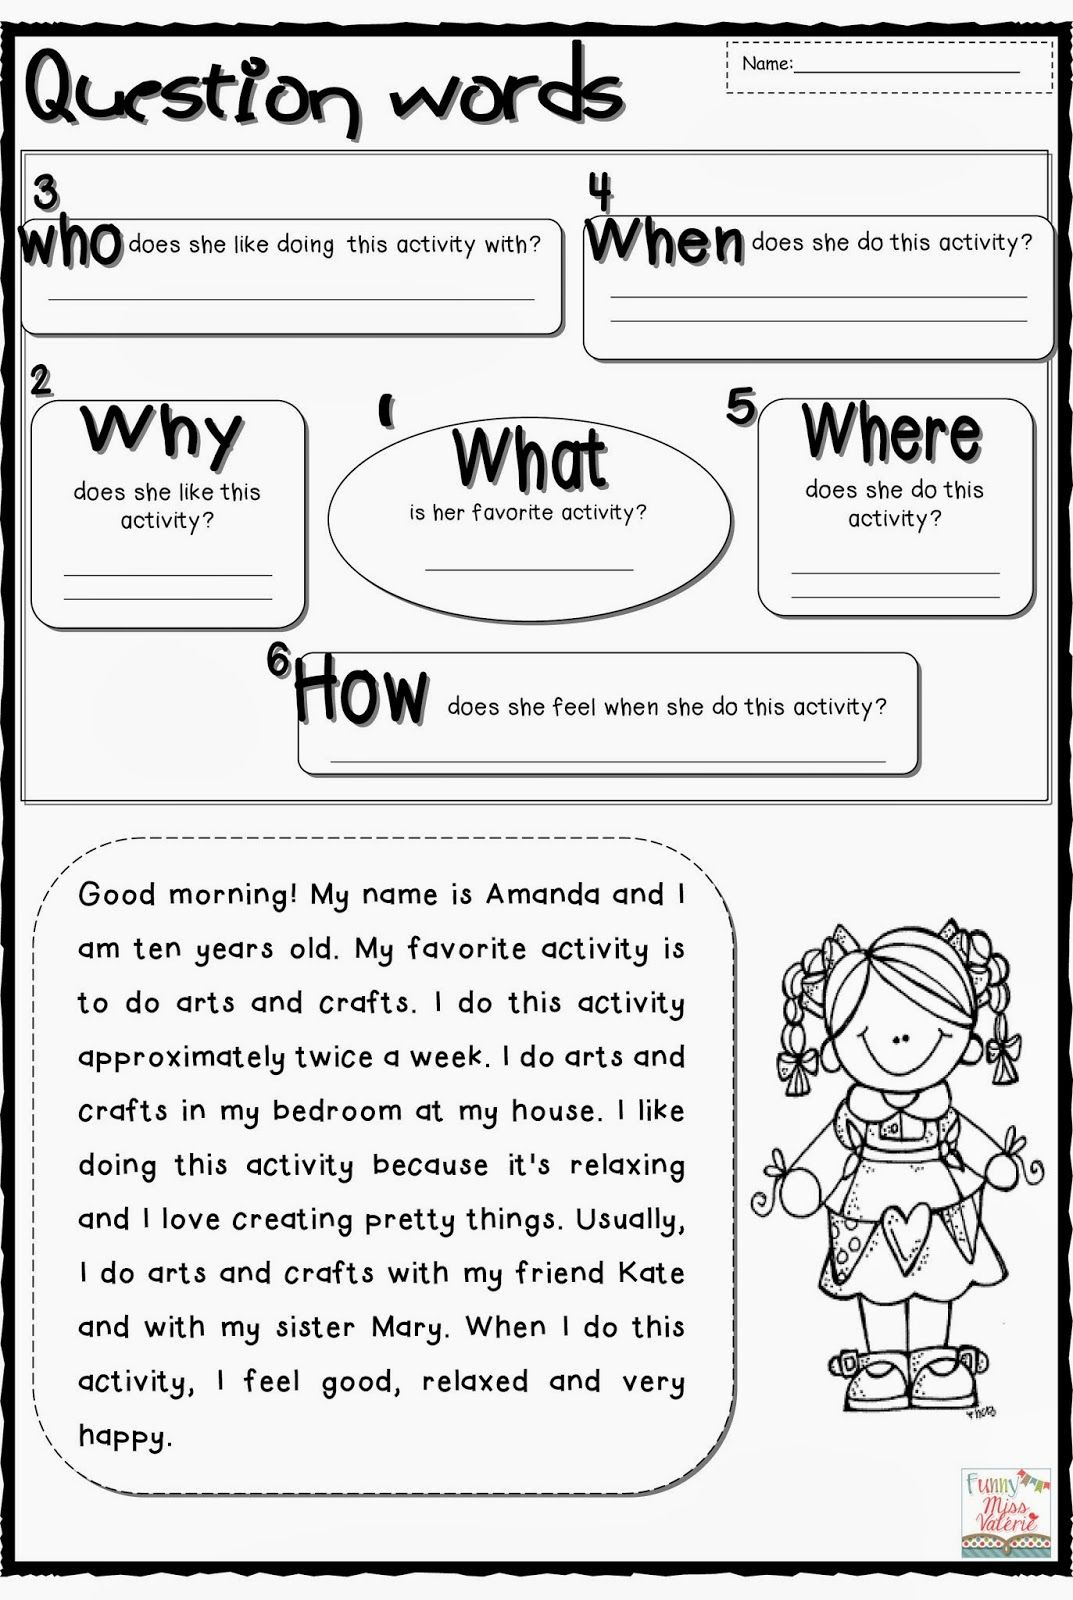 small resolution of all-students-first-grade-worksheets-gallery-photos-my-favorite-activity…    Reading comprehension lessons